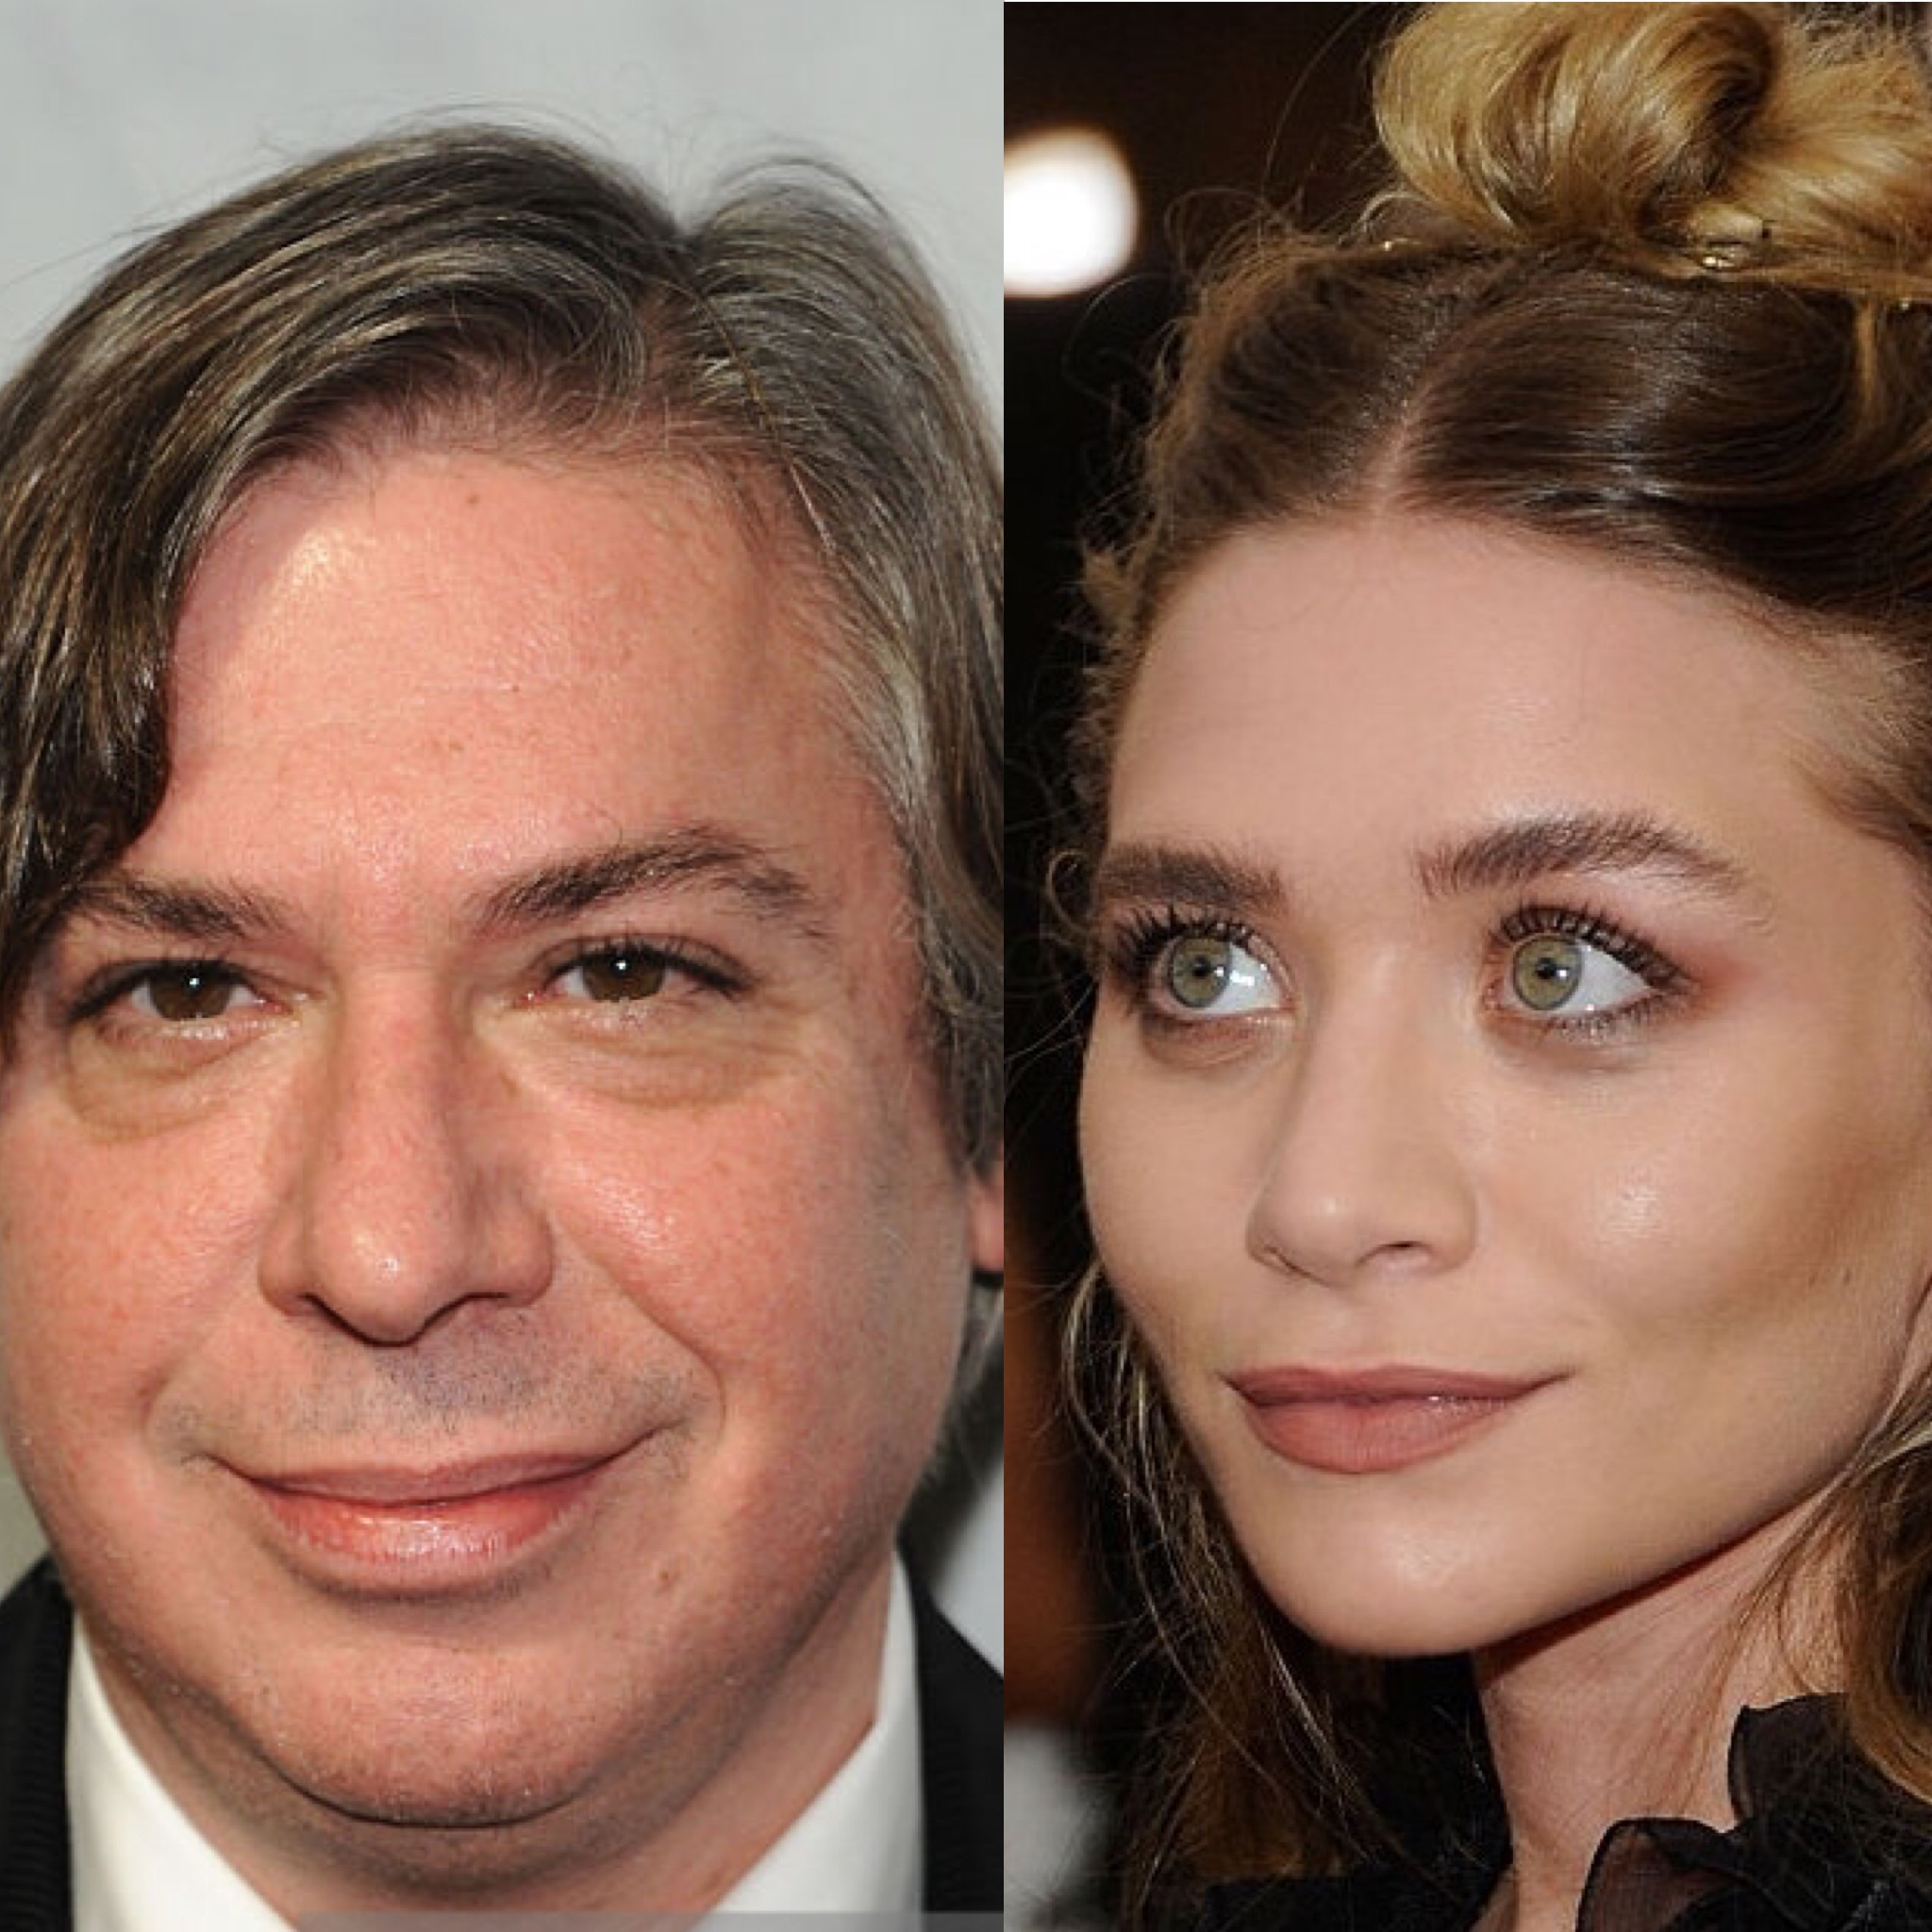 ashley olsen dating life Ashley olsen biography with personal life (affair, boyfriend , lesbian), married info a collection of facts with age, height and developer.